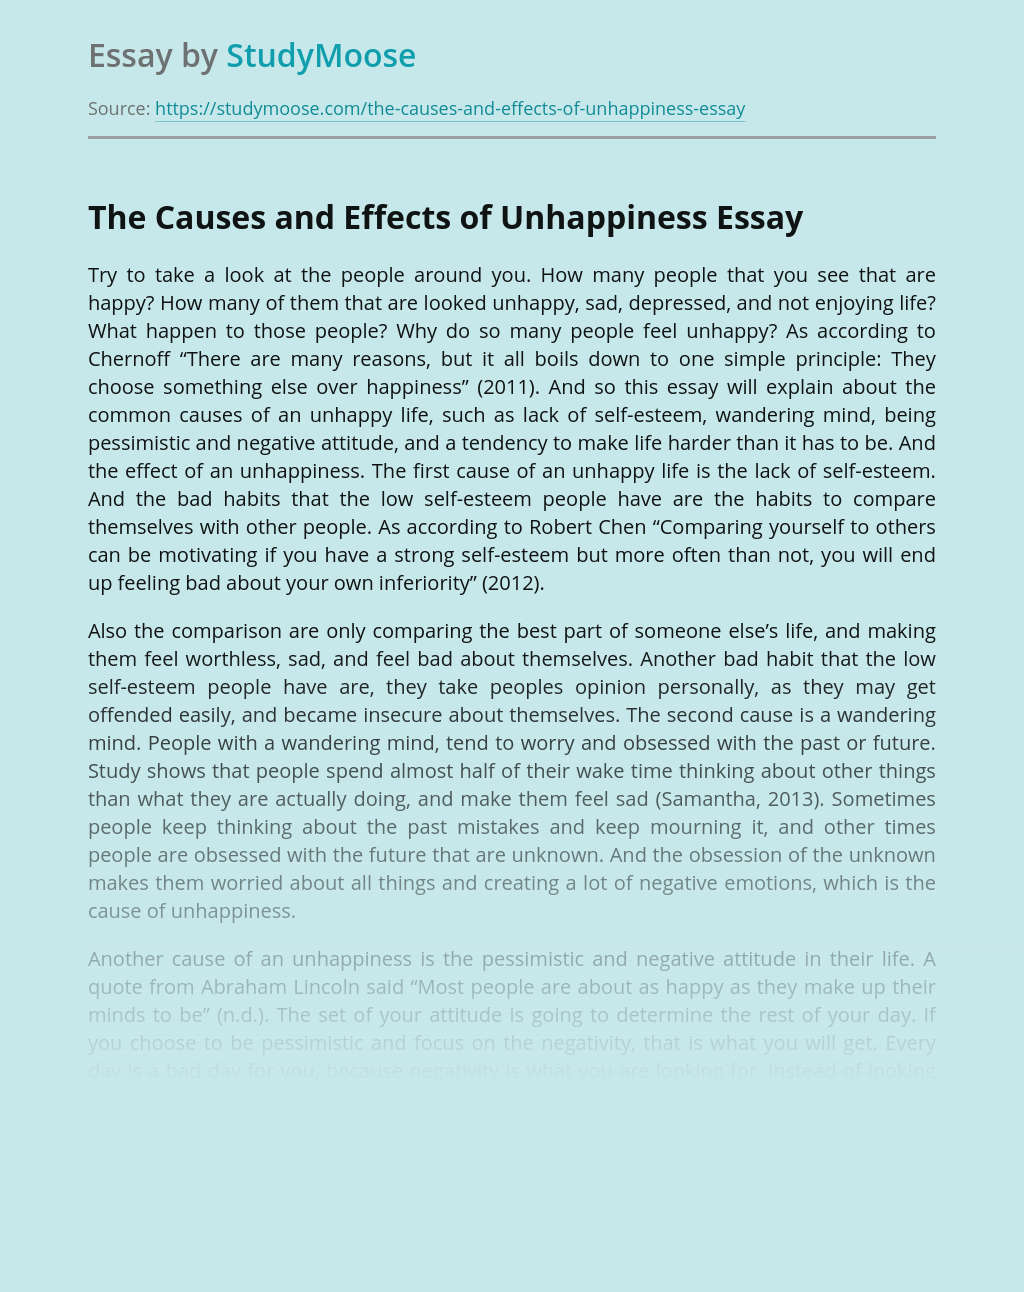 The Causes and Effects of Unhappiness